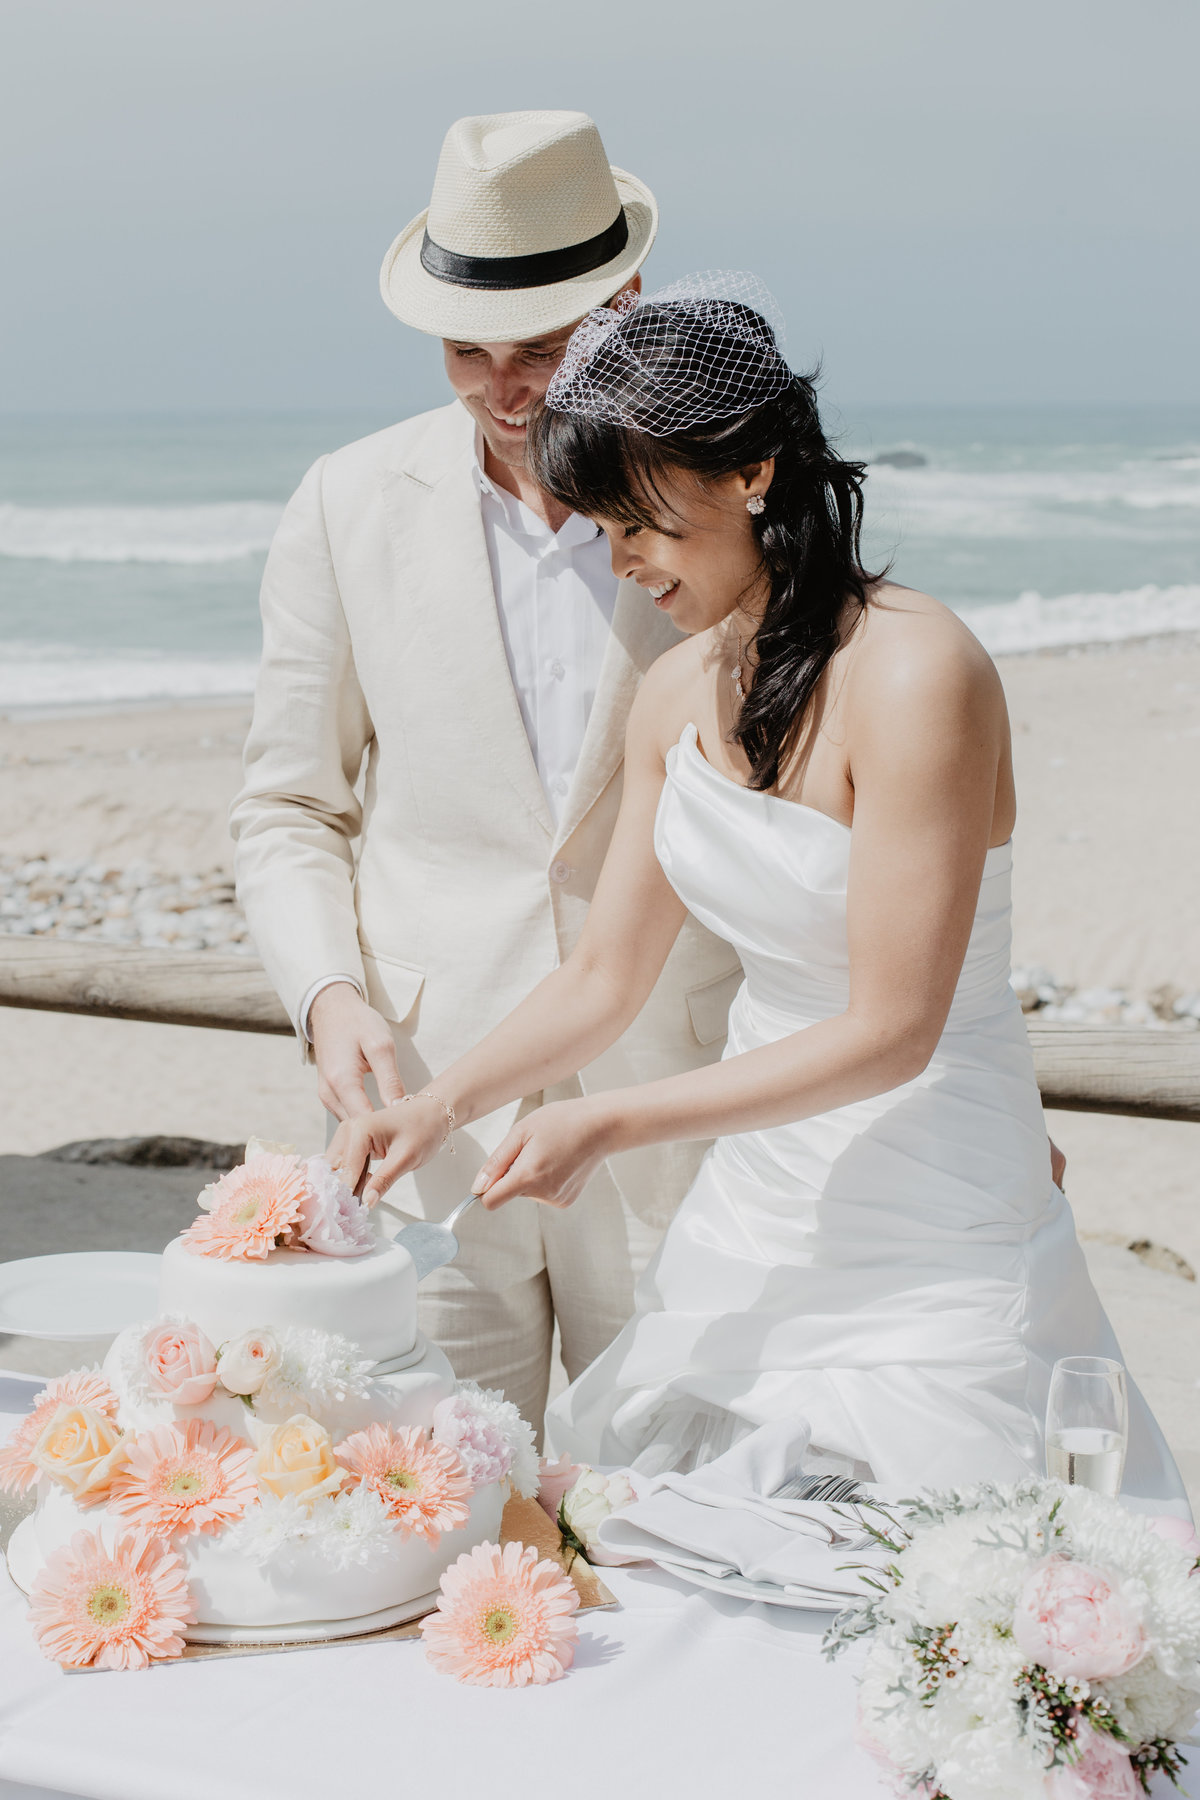 11ValerieVisschedijk - Destinationwedding - Portugal-11